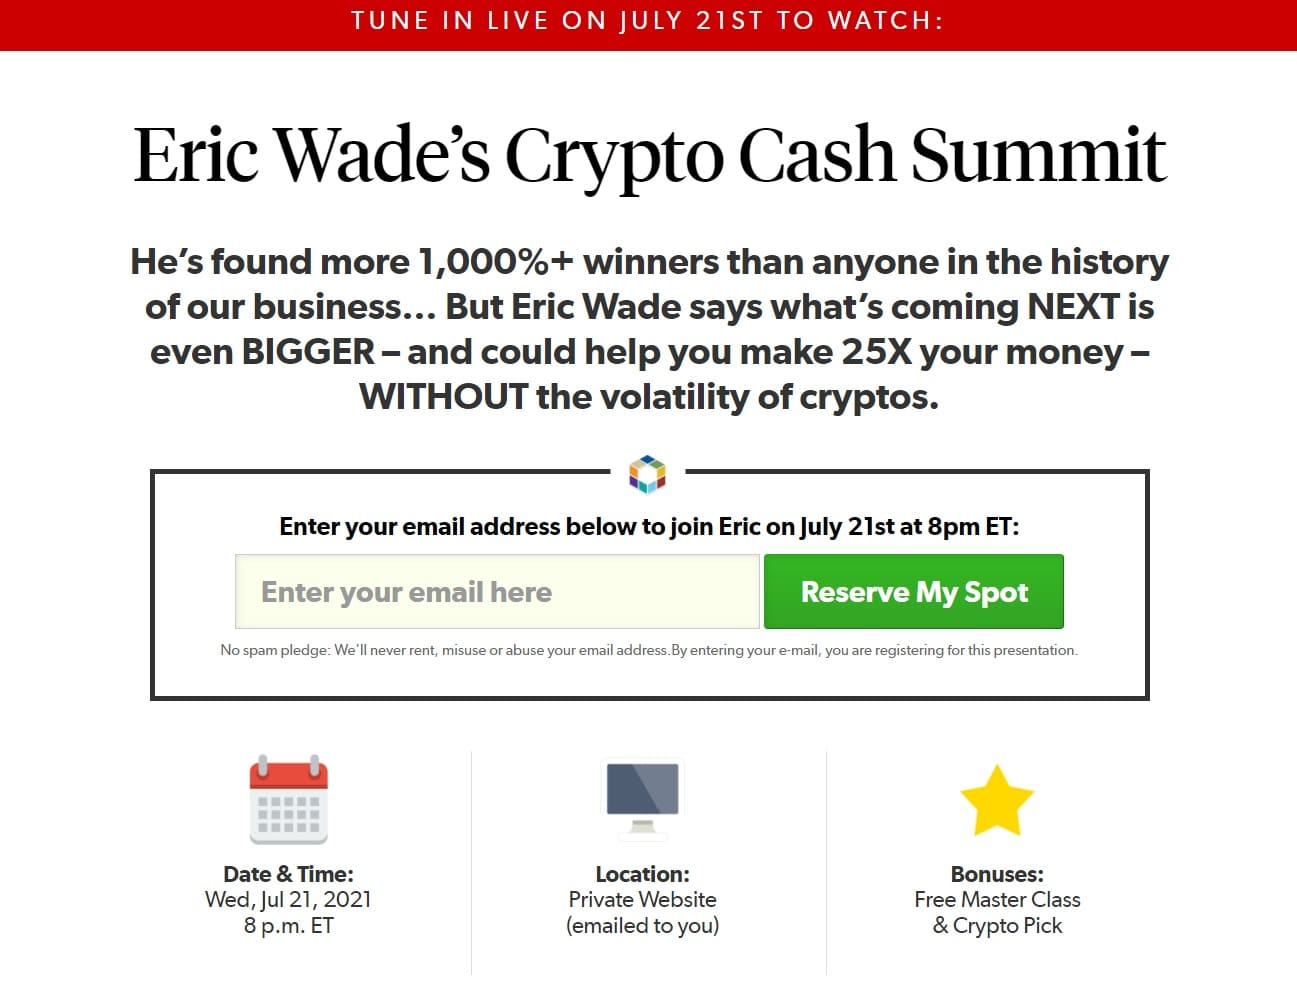 Eric Wade's Crypto Cash Summit Review